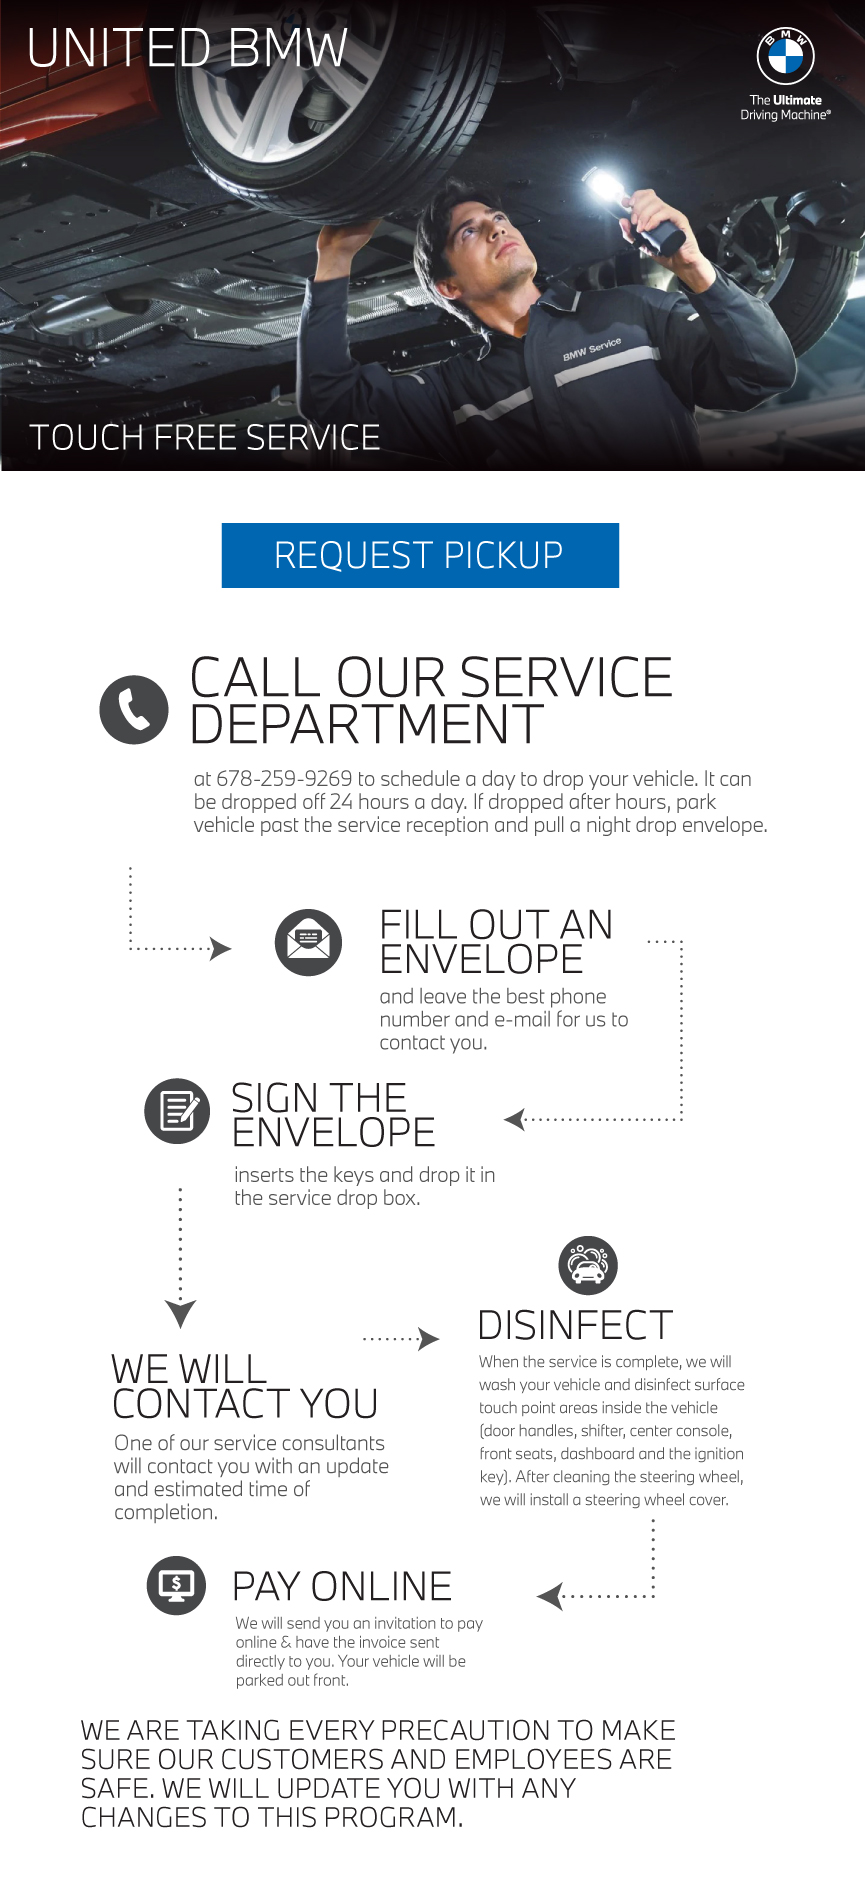 Introducing Touch Free Service at United BMW. Call our Service Department to schedule a day to drop your vehicle. It can be dropped off 24 hours a day. If dropped after hours, park vehicle in front of our service doors and pull a night drop envelope. FILL OUT AN ENVELOPE and leave the best phone number and e-mail for us to contact you. SIGN THE ENVELOPE insert the keys and drop it in the service drop box. WE WILL CONTACT YOU One of our service consultants will contact you with an update and estimated time of completion. DISINFECT When the service is complete, we will wash your vehicle and disinfect all touch point areas inside the vehicle (door handles, shifter, center console, front seats, dashboard and the ignition key). After cleaning the steering wheel, we will install a steering wheel cover. PAY ONLINE We will send you an invitation to pay online & have the invoice sent directly to you. Your vehicle will be parked out front. We are taking every precaution to make sure our customers and employees are safe. We will update you with any changes to this program.